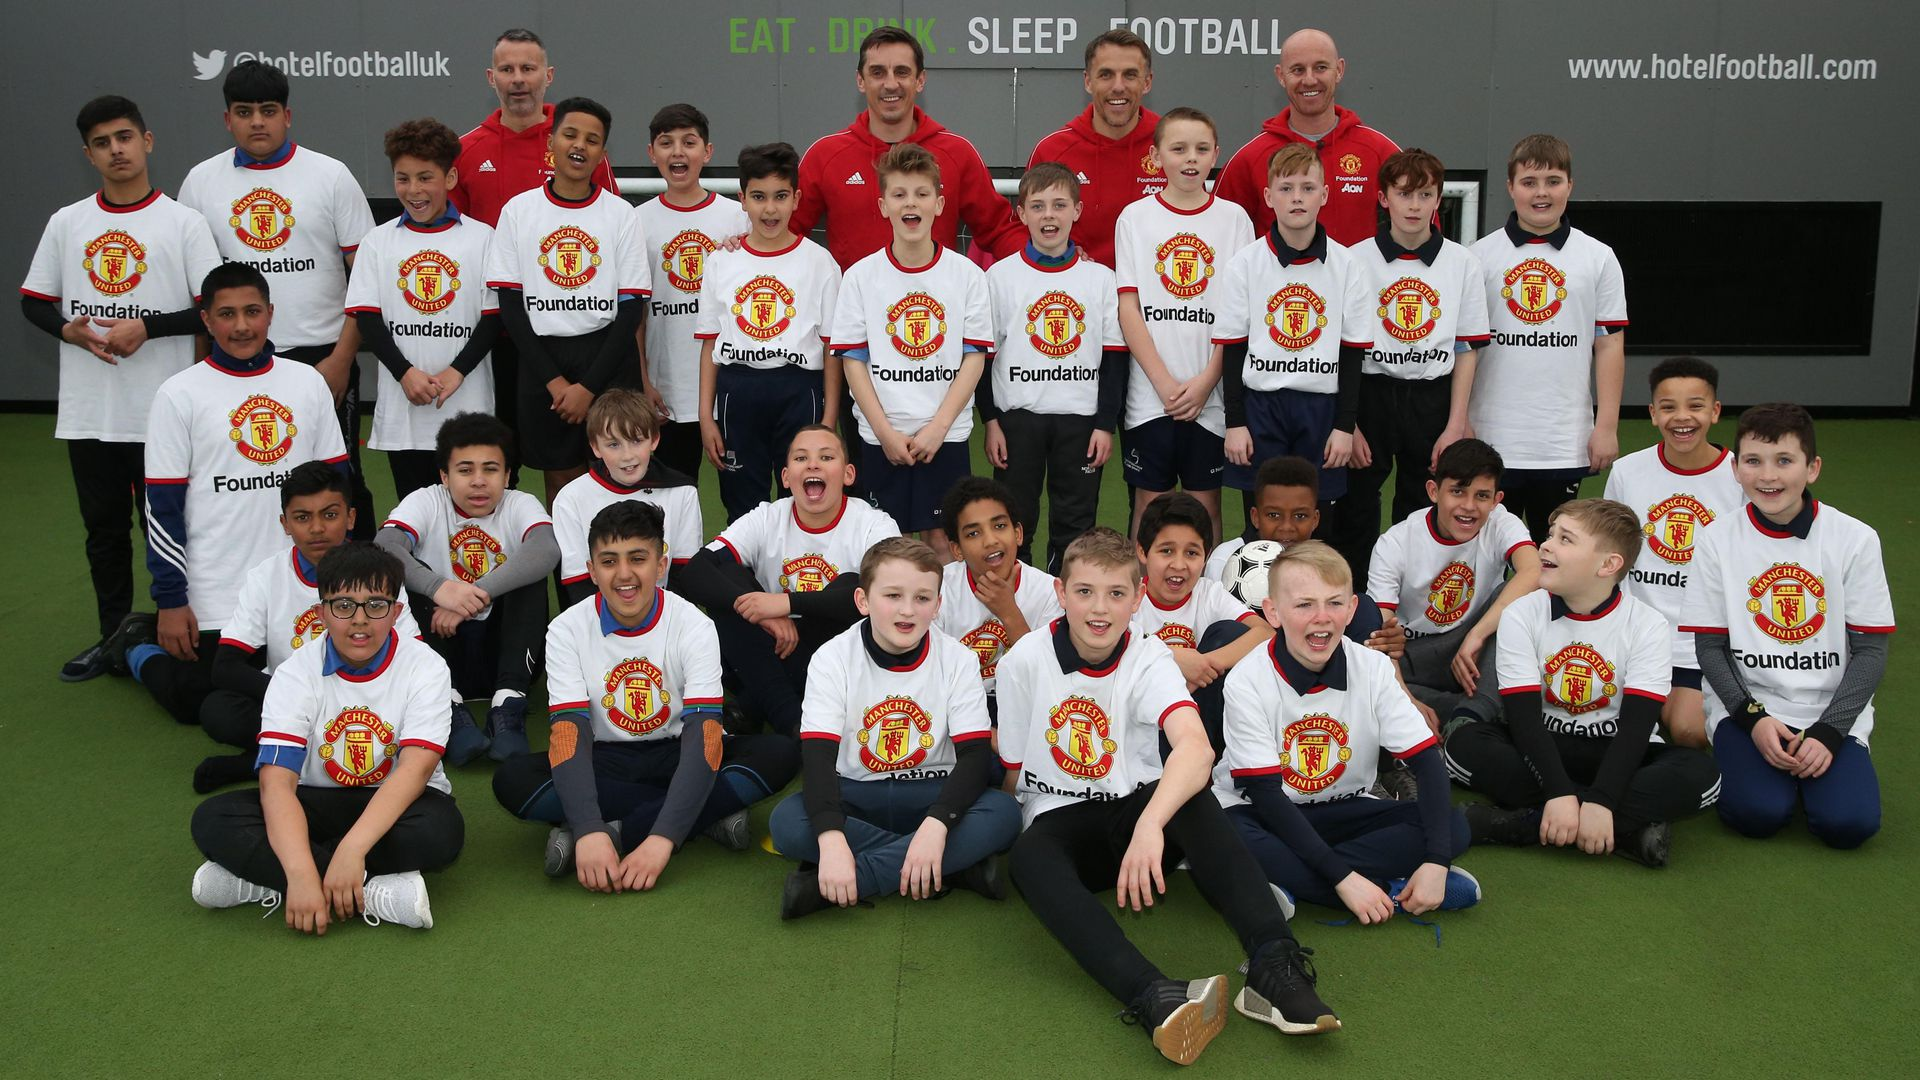 Class of '92 host kickabout for young school children | Manchester United